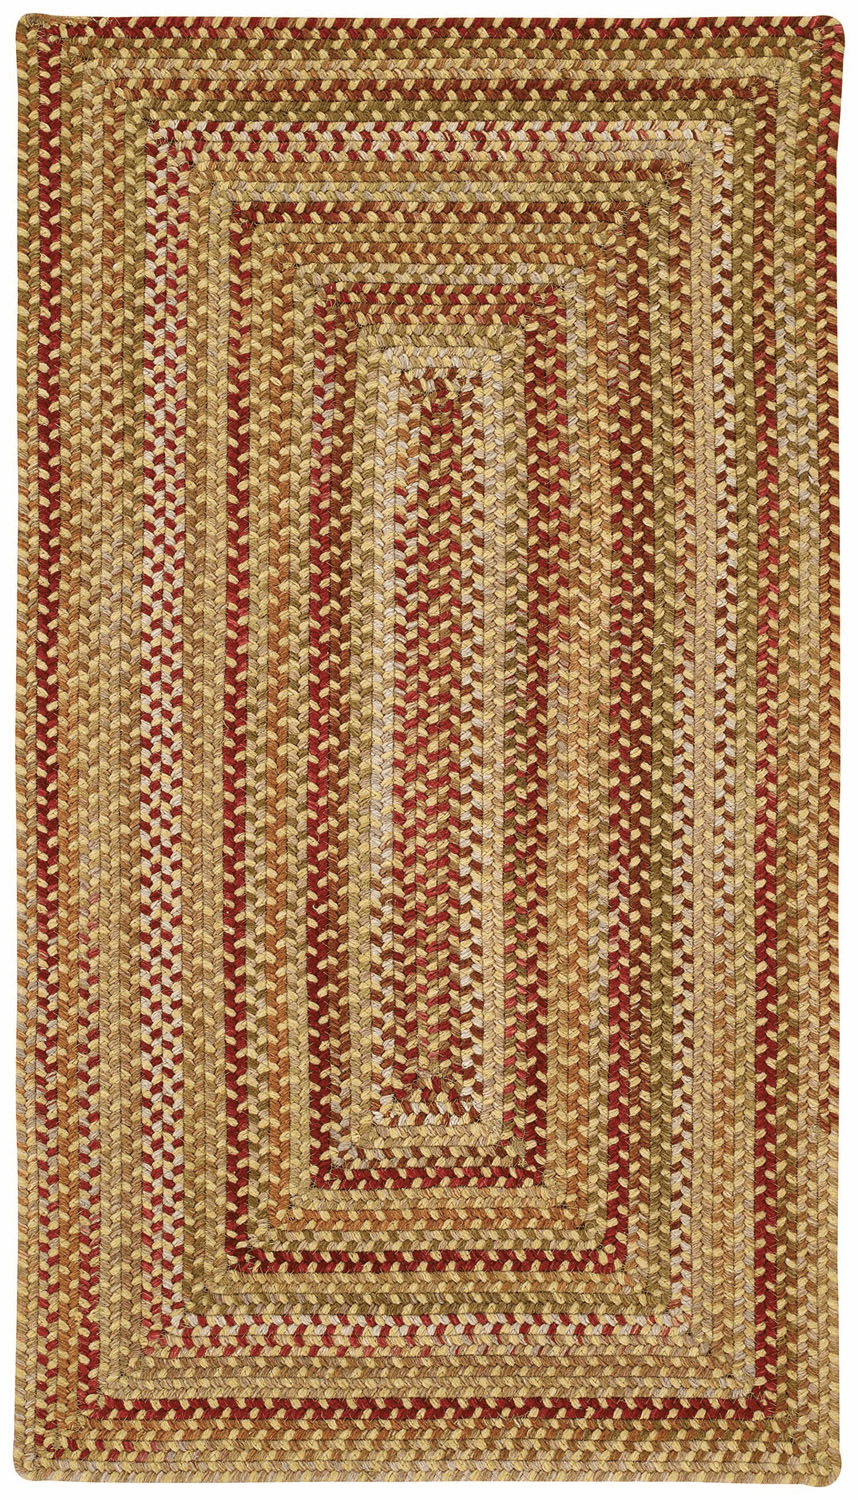 Hand-Braided Gold Hues Rug